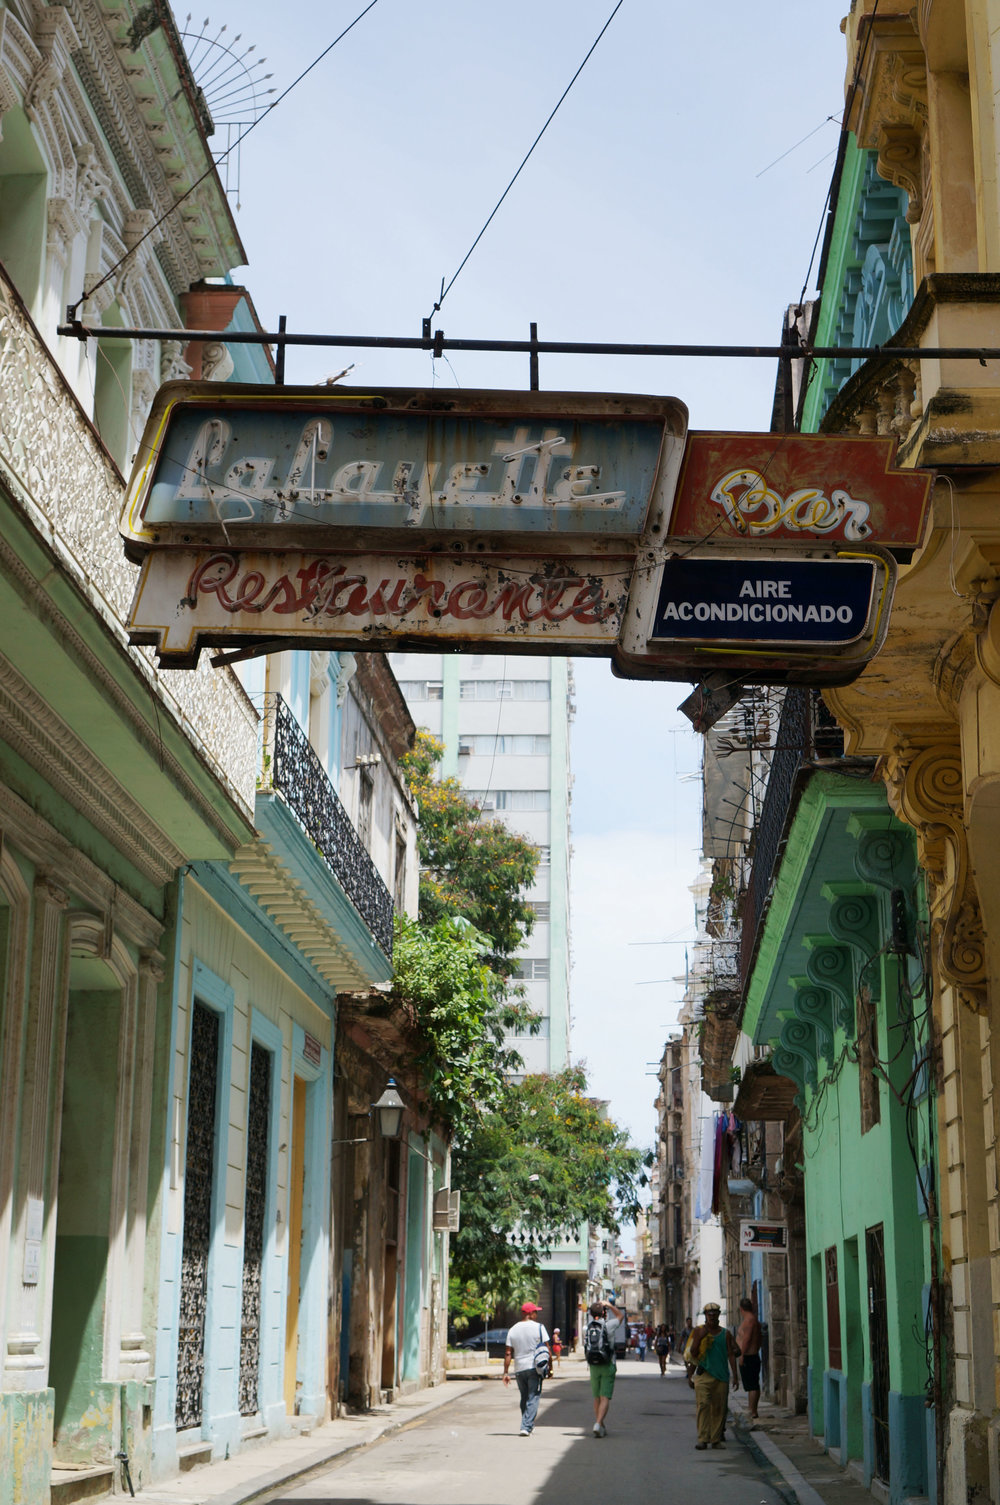 An old sign from the 50s - I used it a lot as a landmark to navigate around Habana Veija.  I'll be honest, as I passed underneath it I always quickened my pace...